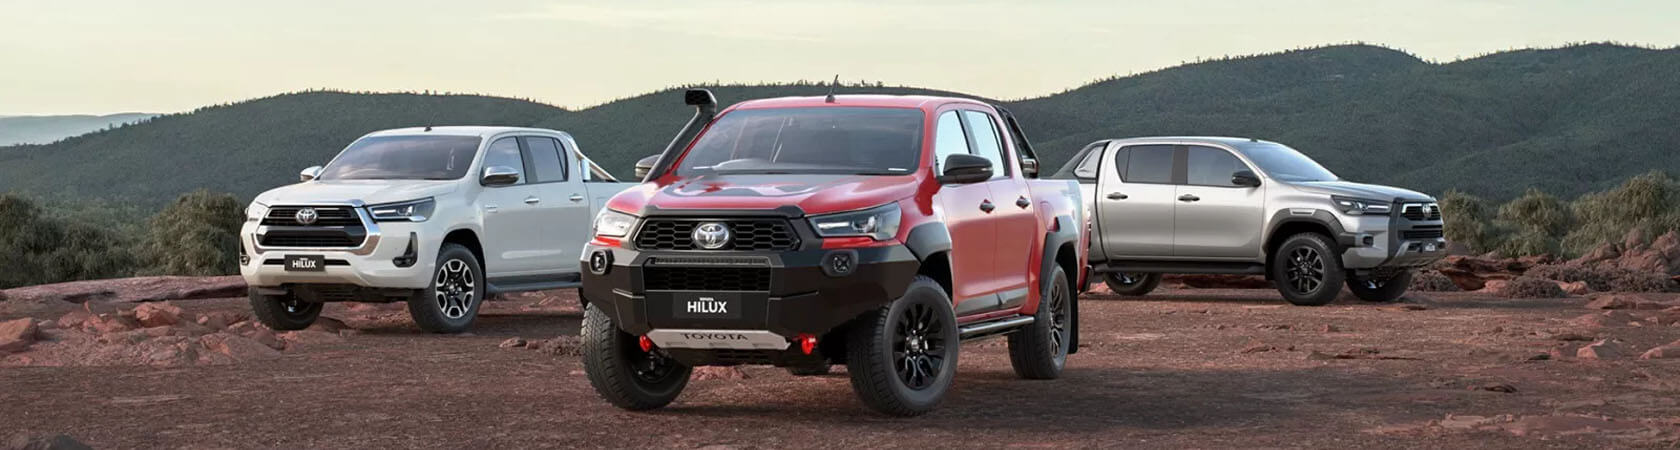 Peter Kittle Toyota - Alice Springs HiLux